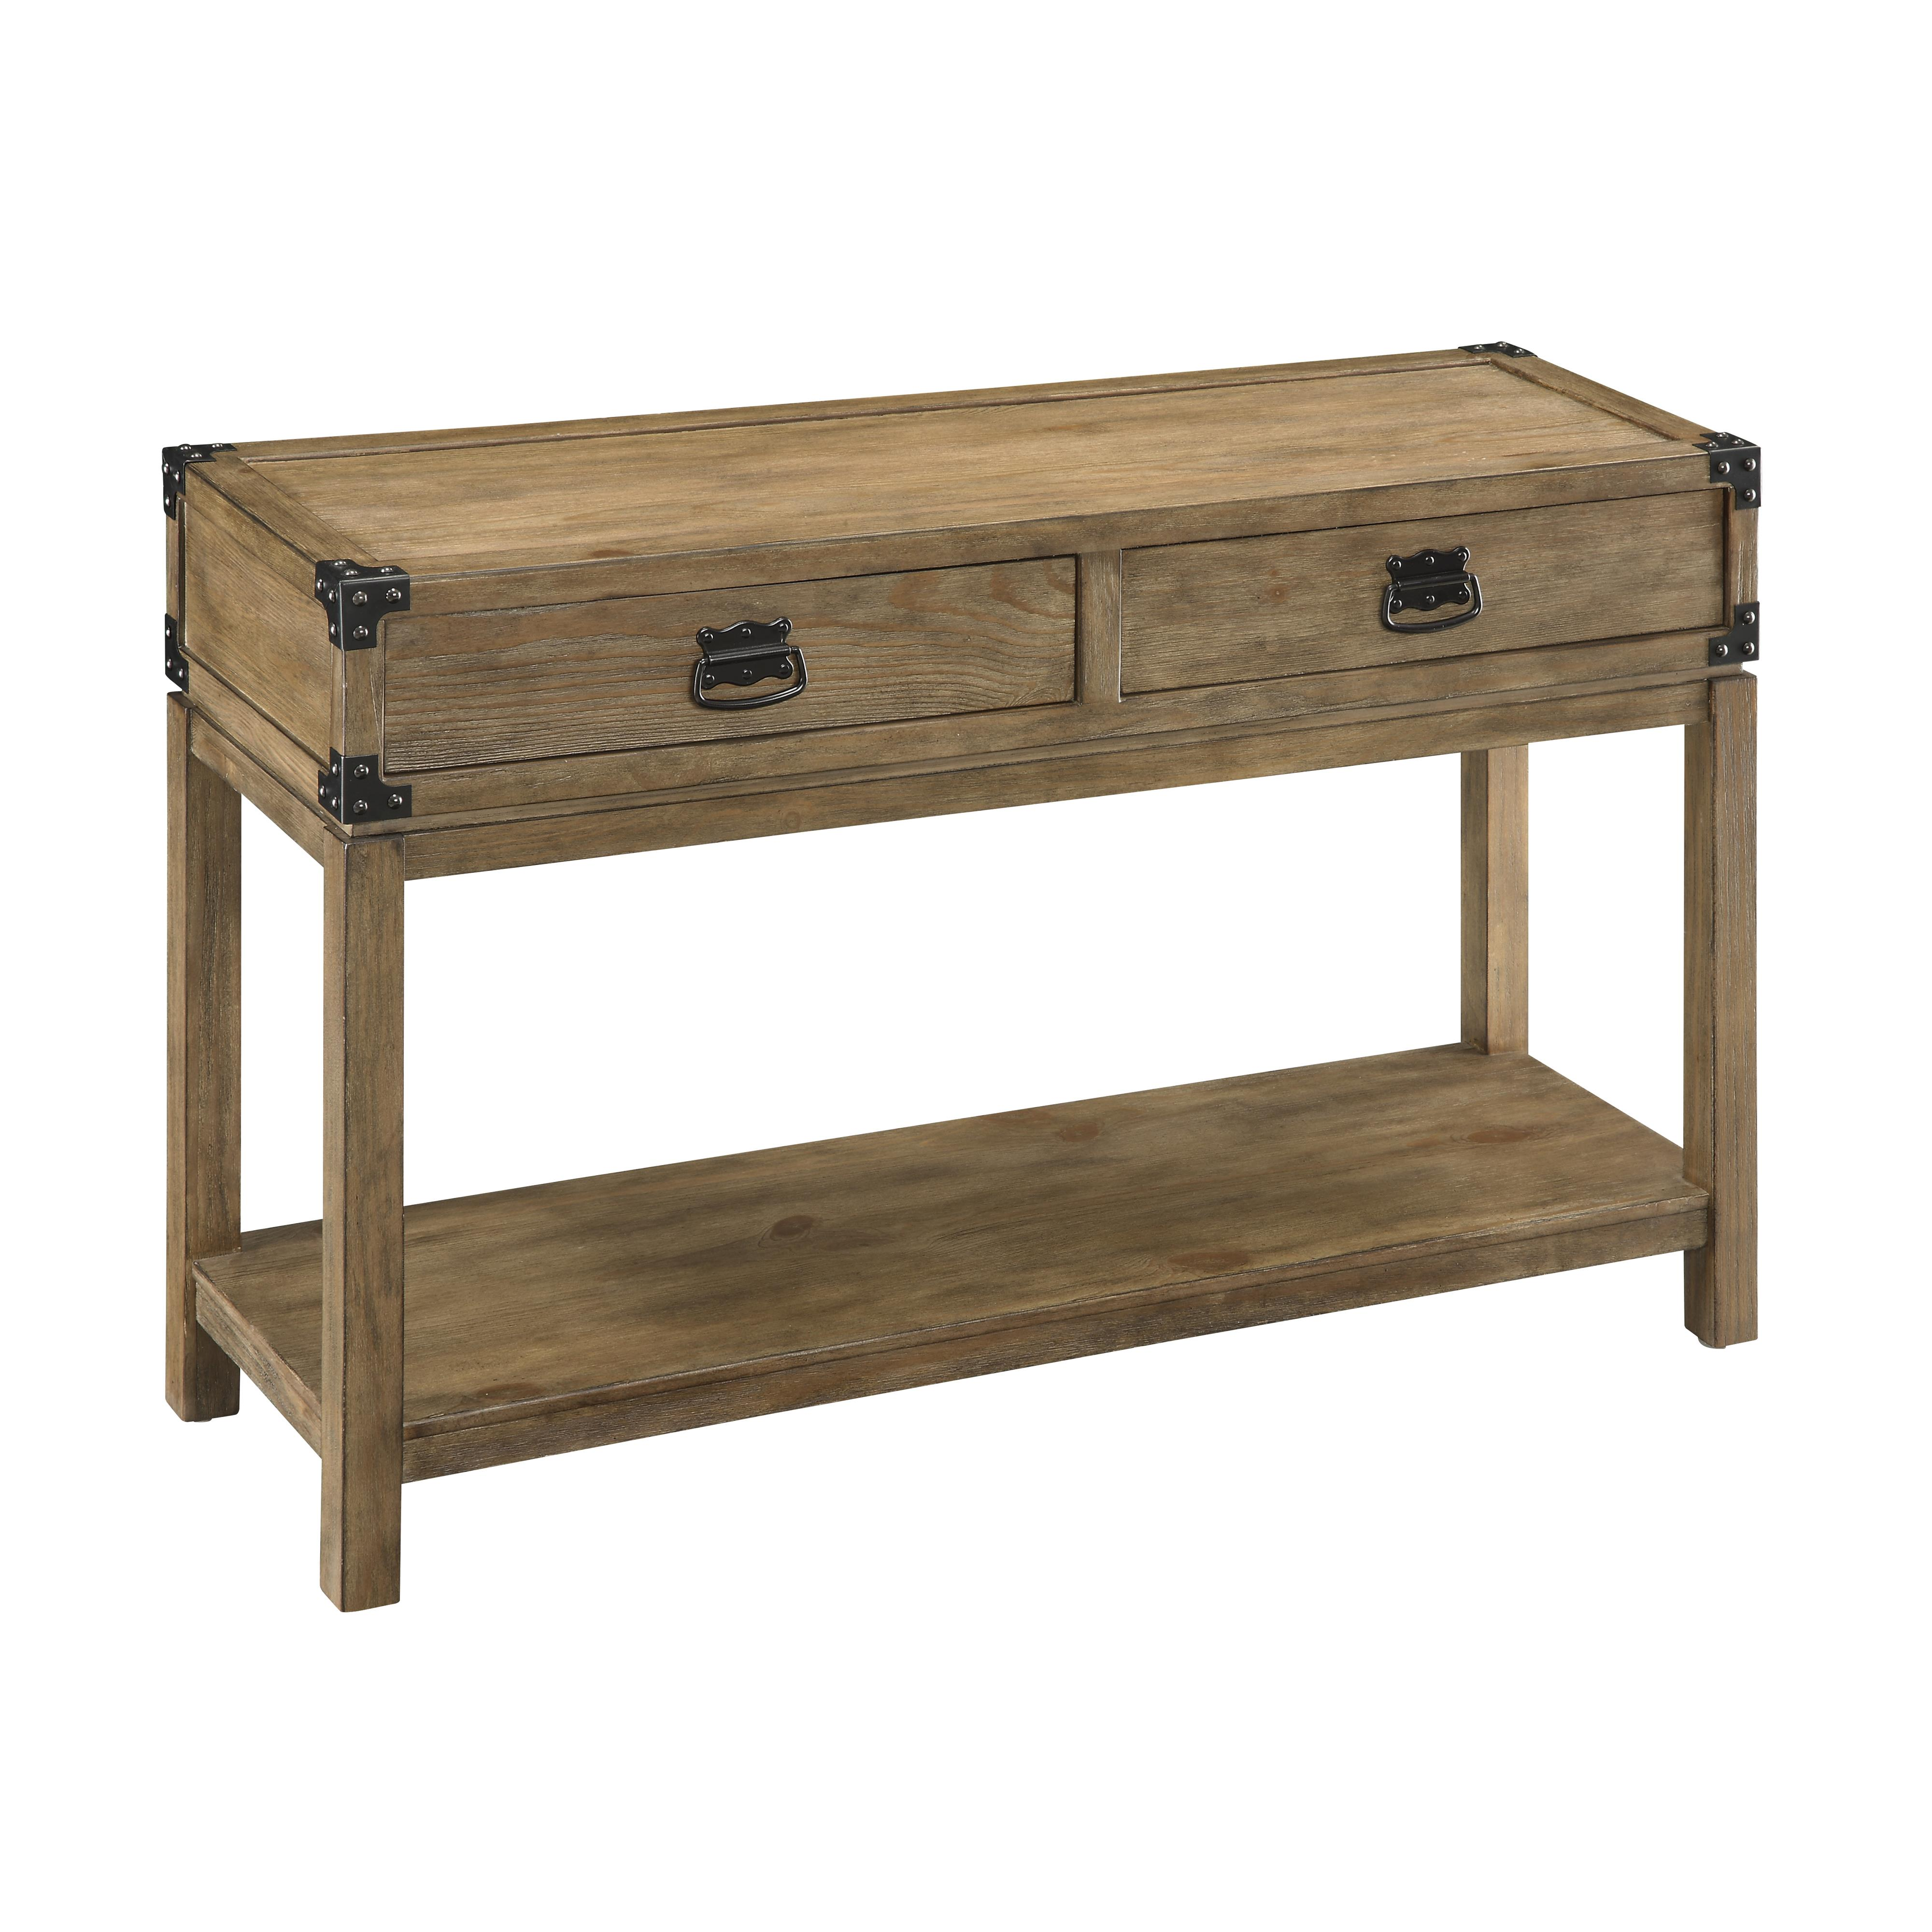 C2C Accents Two Drawer Console Table by C2C at Walker's Furniture